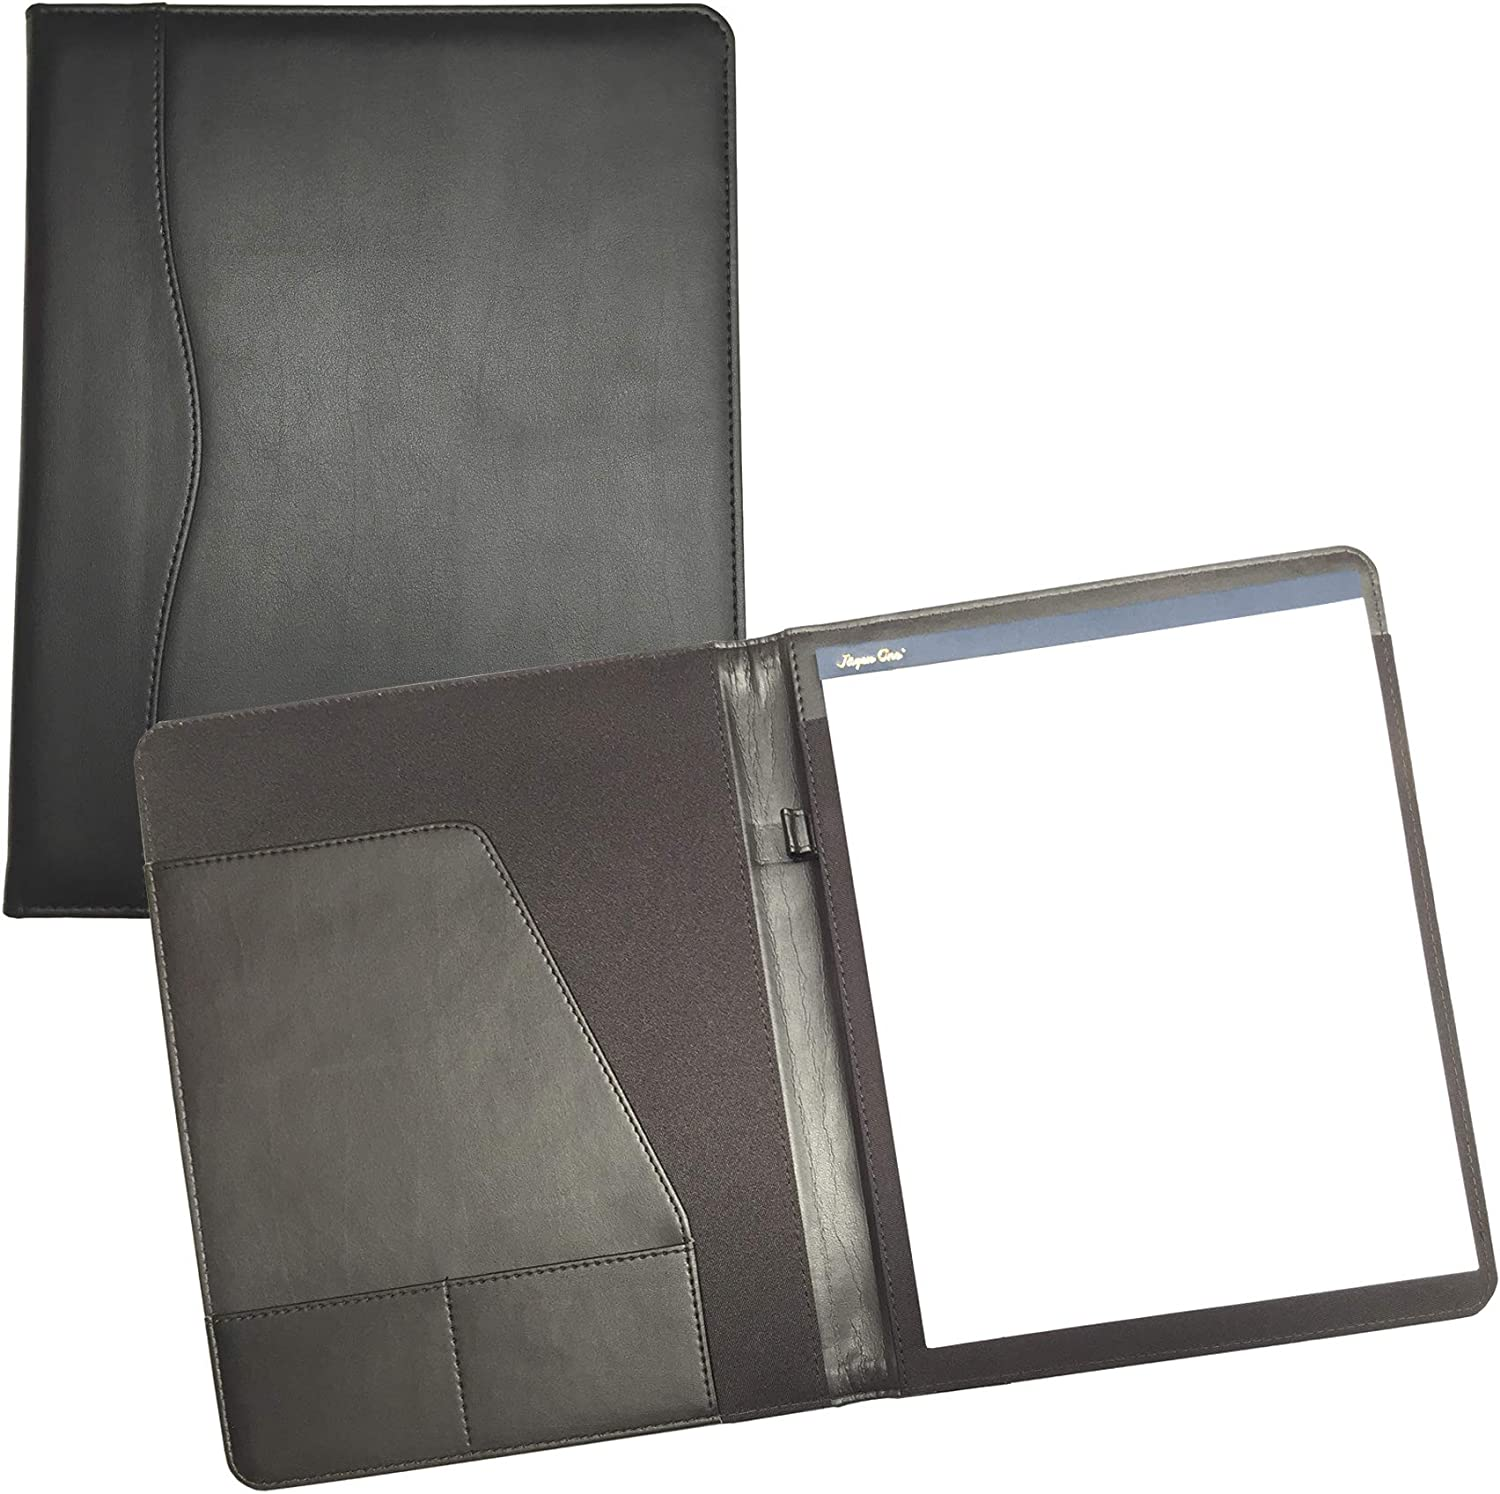 Fees free!! Professional Padfolio Organizer with Letter R Note pad Included Sale special price